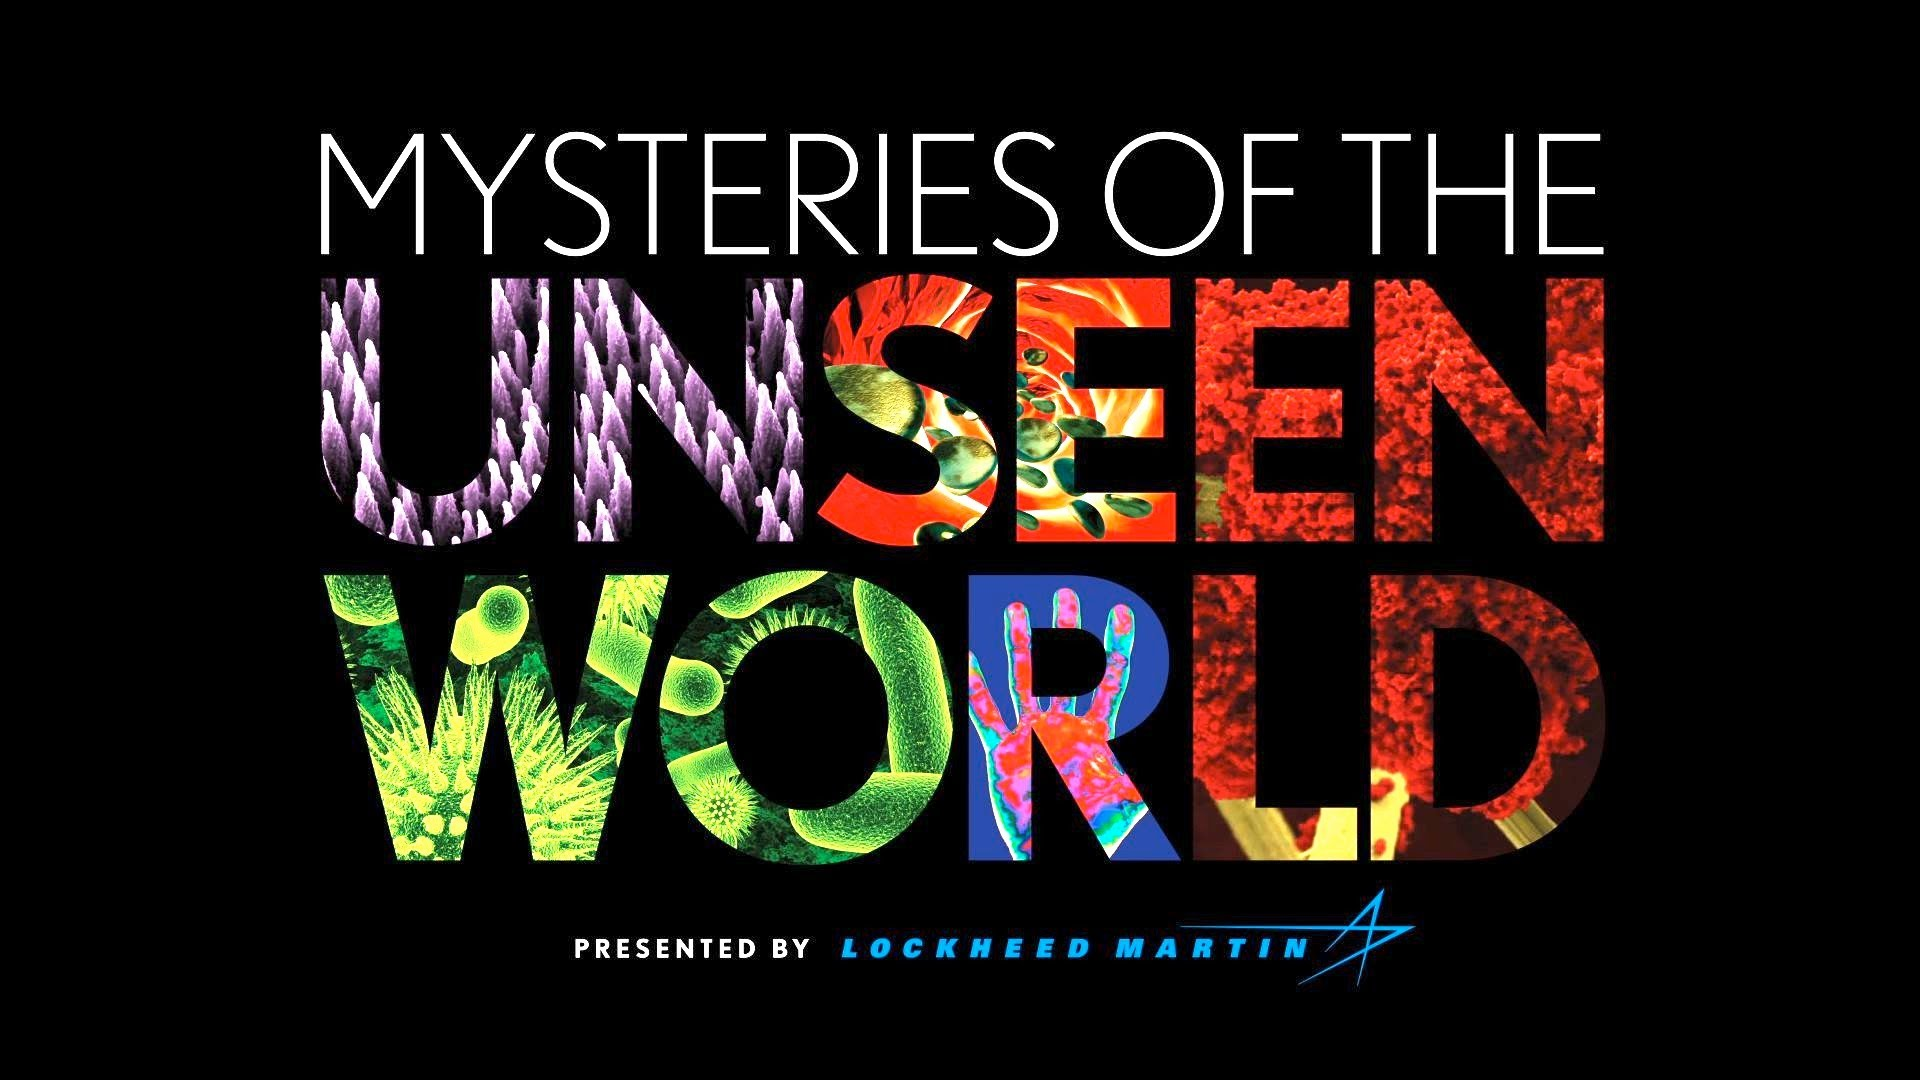 Mysteries of the Unseen World at the AMNH